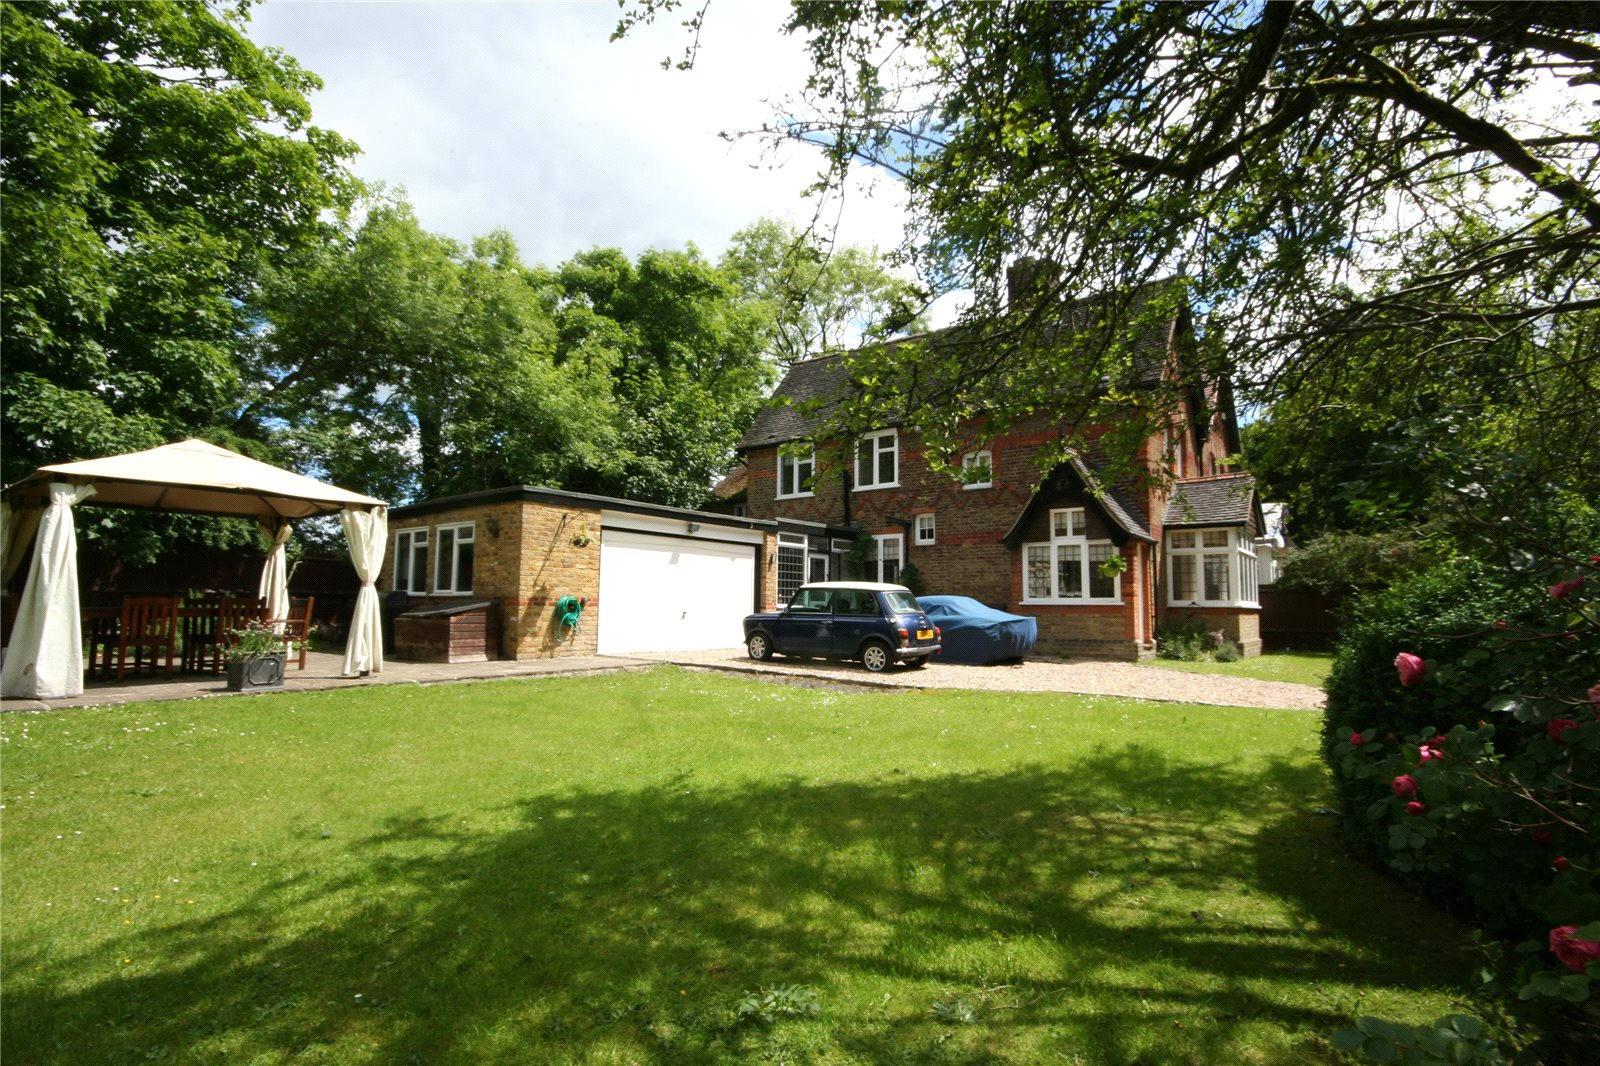 Maison unifamiliale pour l Vente à Heusden Way, Gerrards Cross, Buckinghamshire, SL9 Gerrards Cross, Angleterre